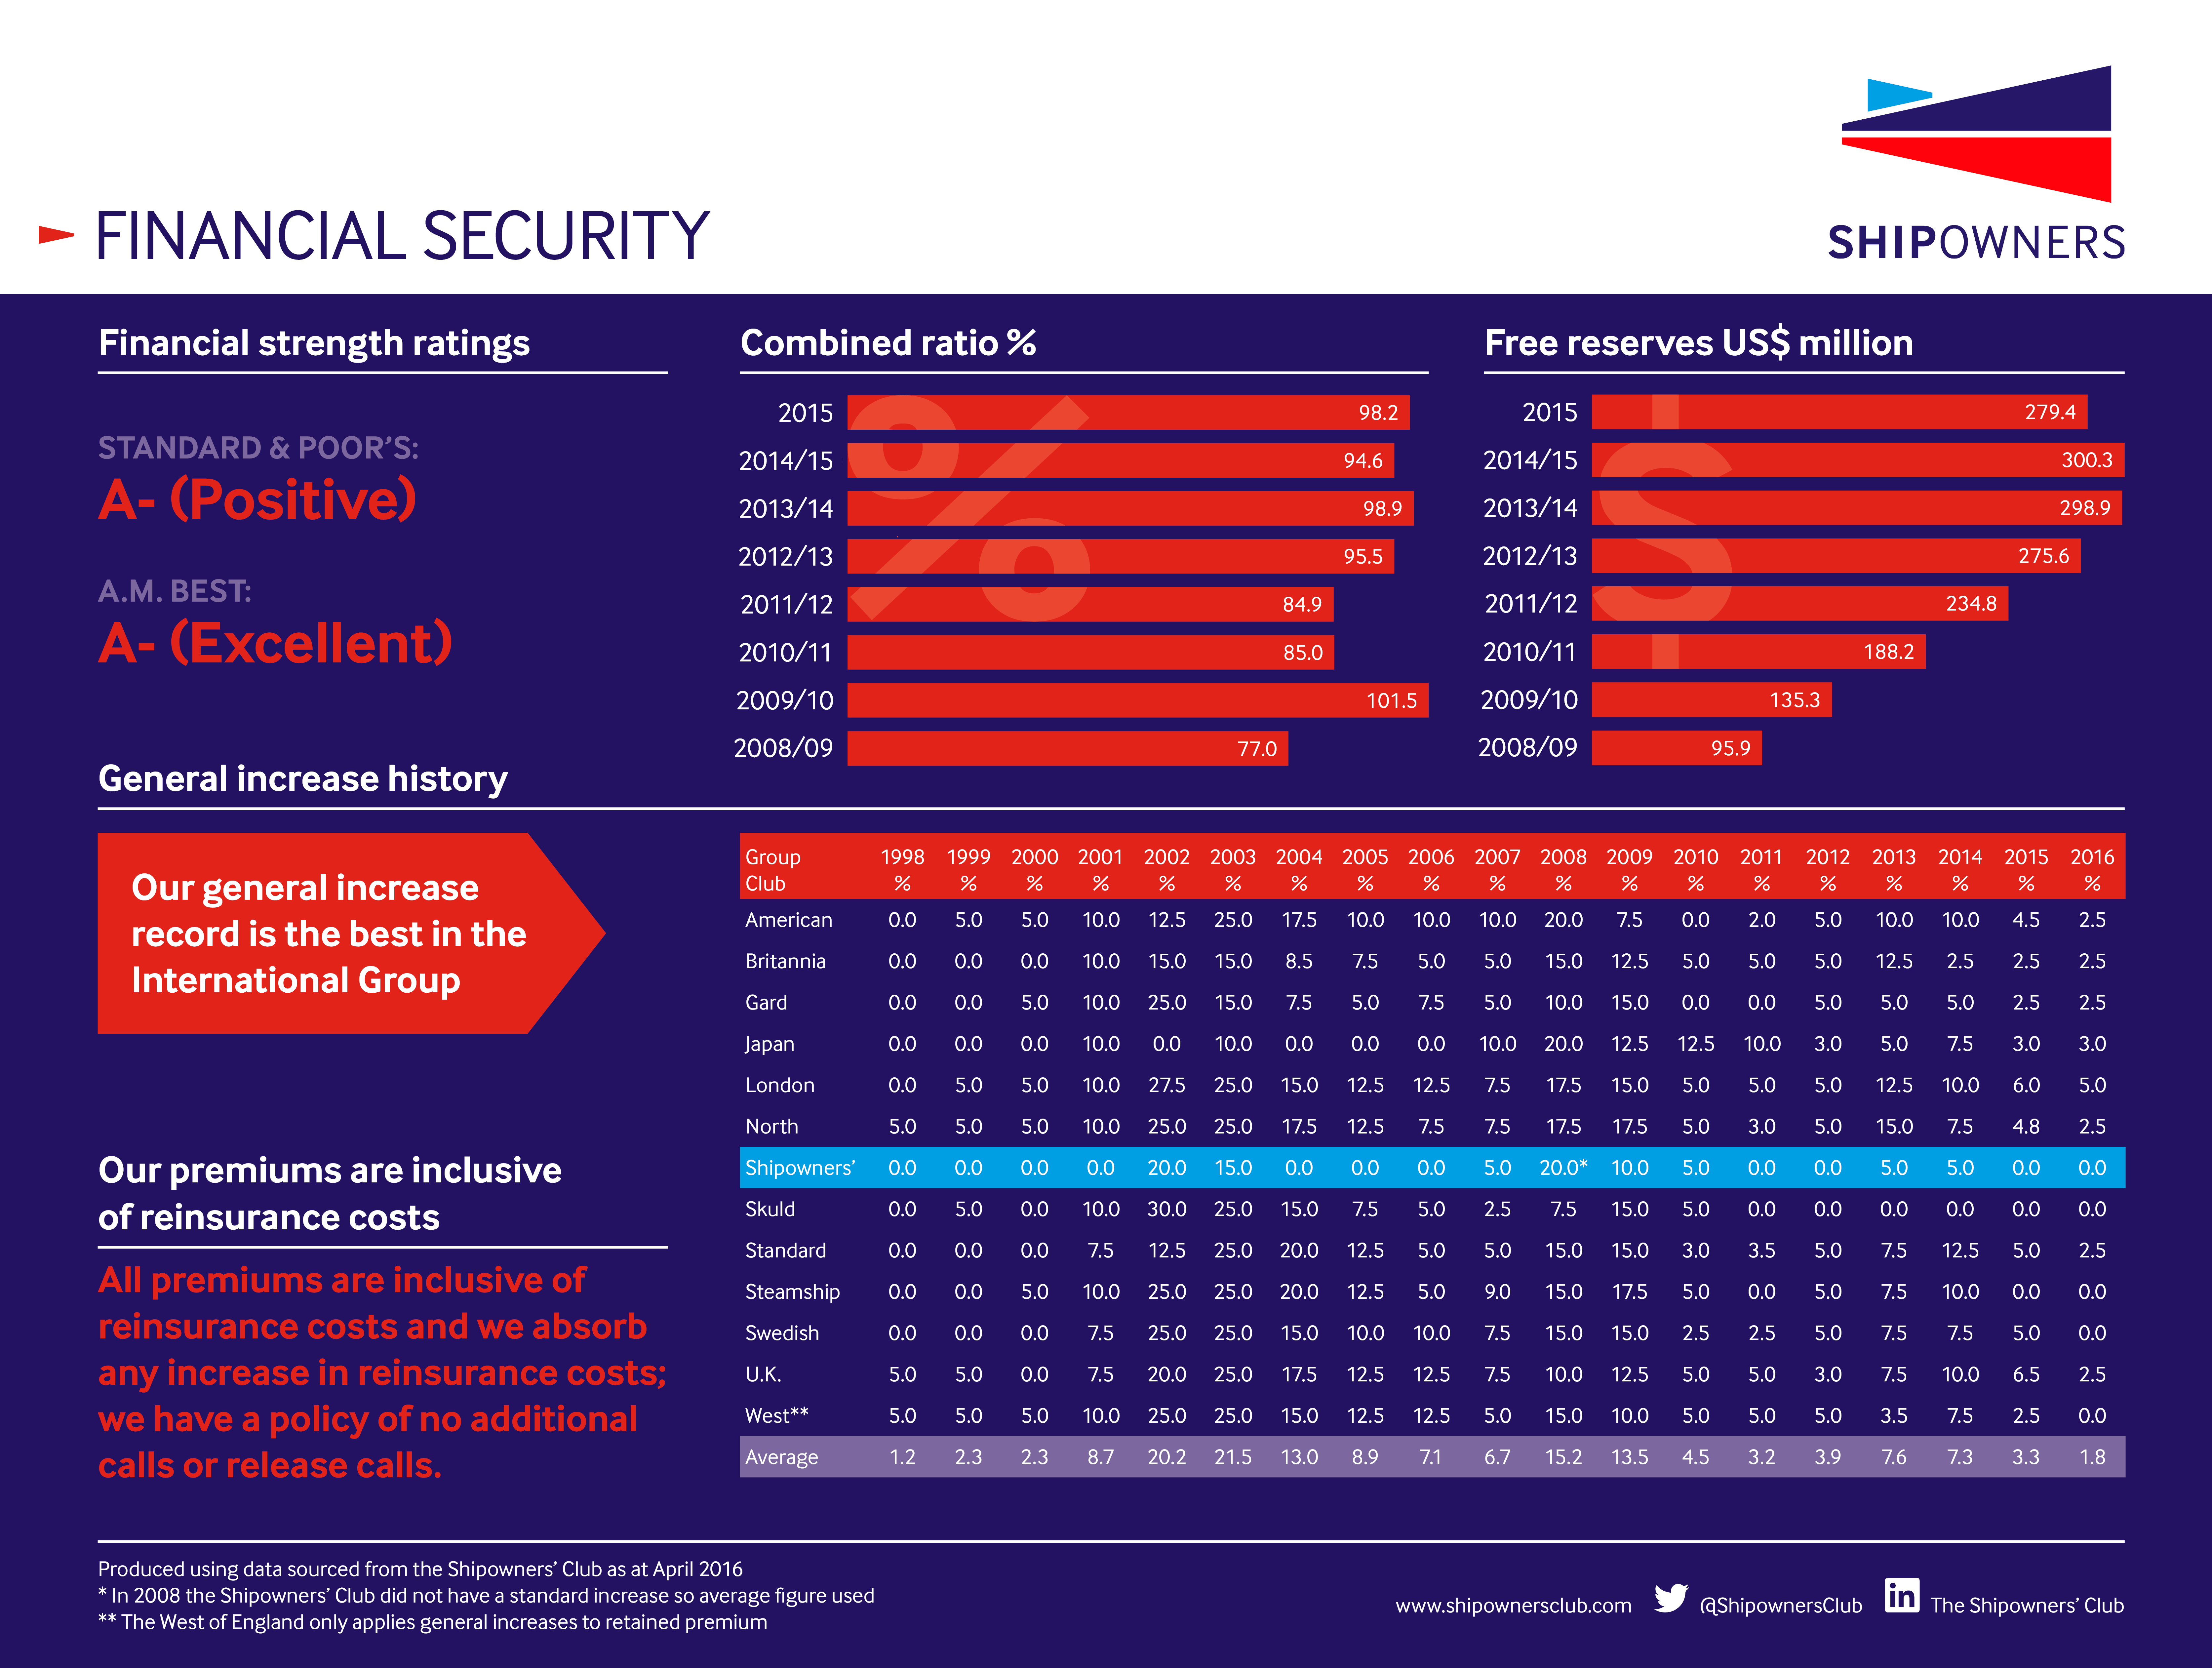 Shipowners' Financial Security 2016